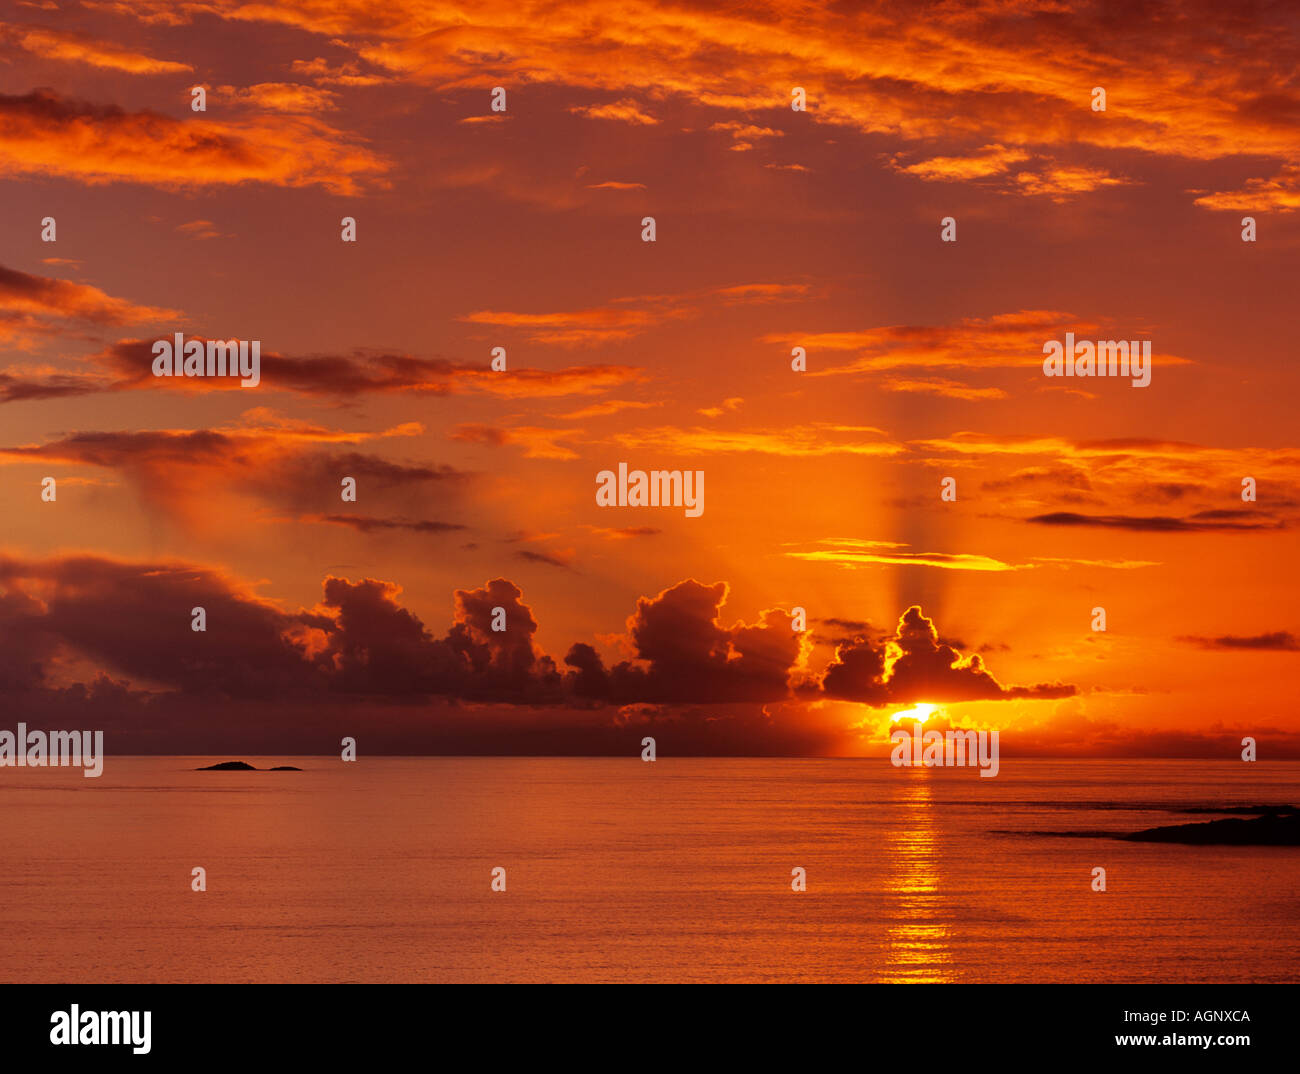 Stunning red sky at sunset with sunbeams through clouds over Firth of Lorn on Scottish west coast at sundown. Argyll & Bute Scotland UK Britain - Stock Image